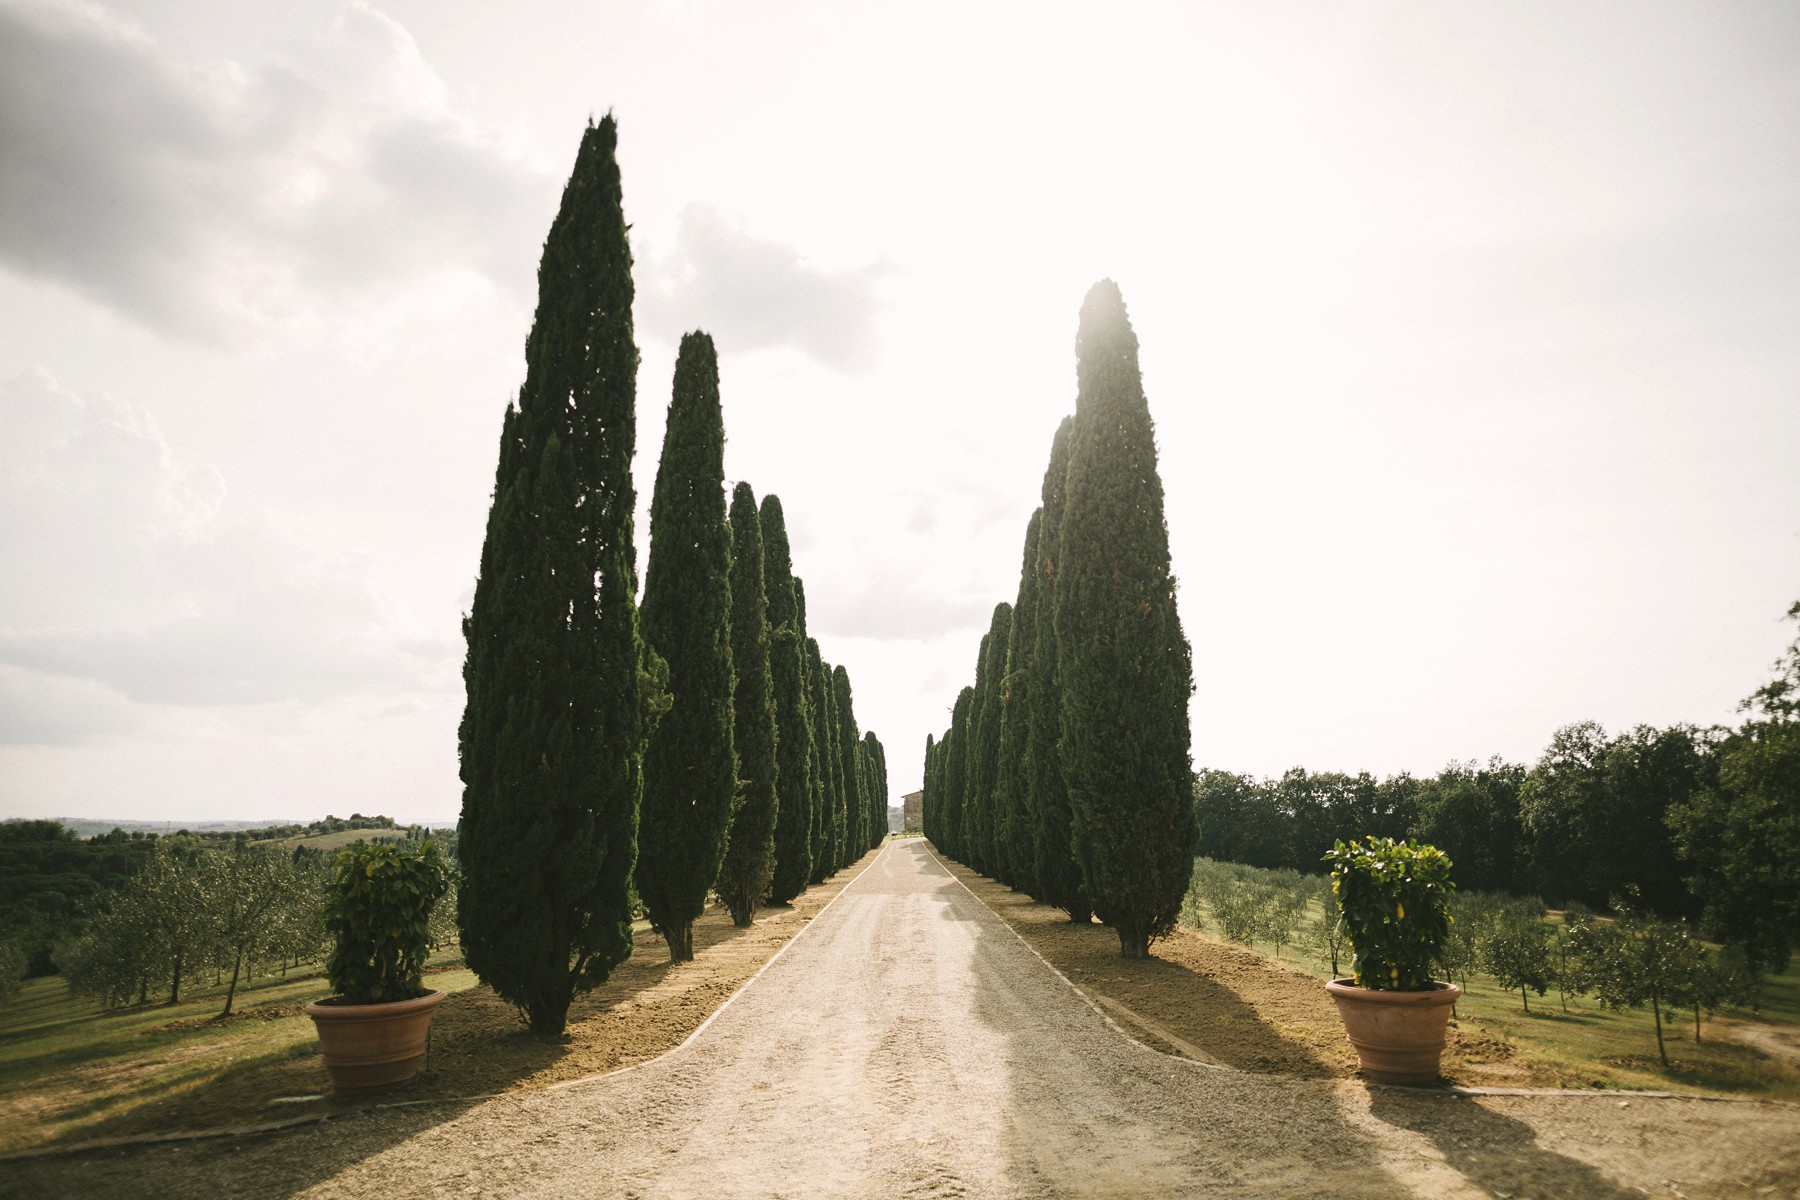 Tuscan farmhouse Casetta is a perfect venue for intimate and elopement weddings surrounded by Chianti green hills